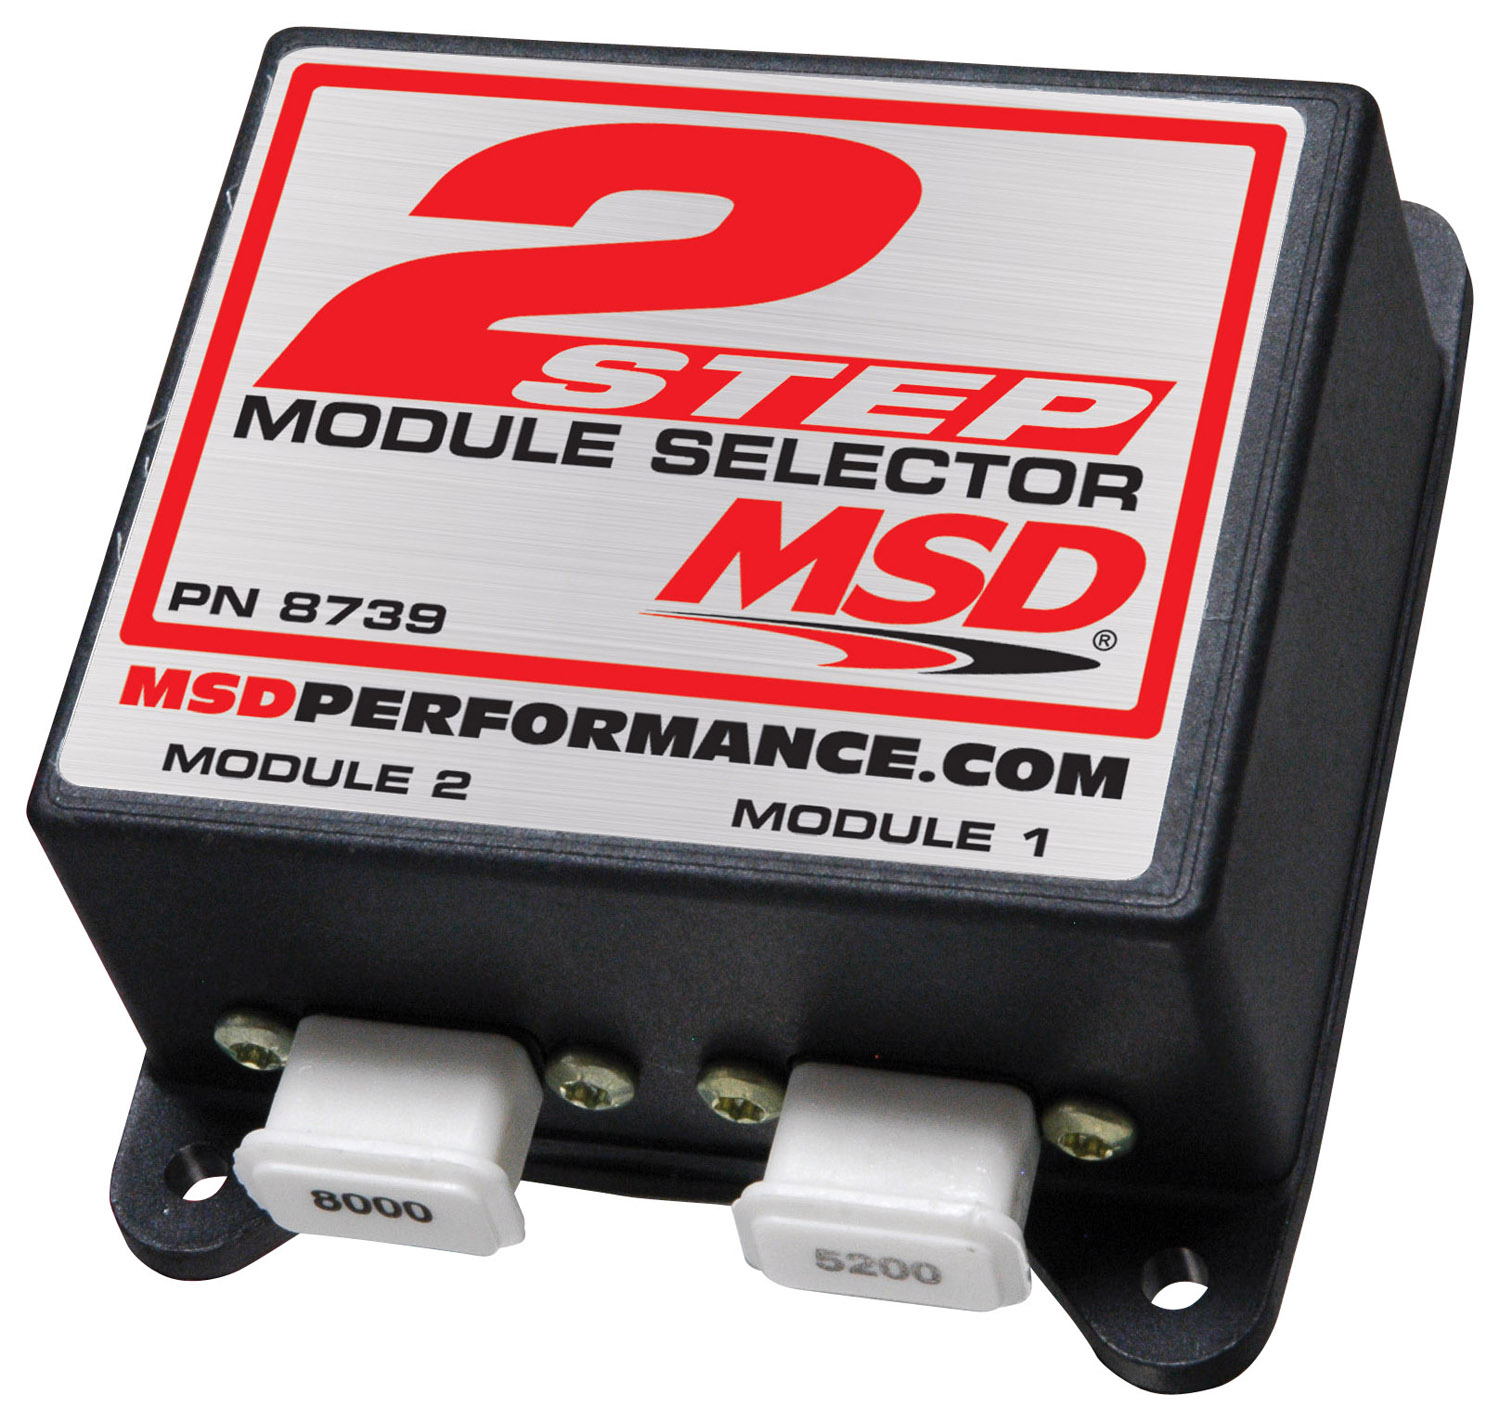 hight resolution of msd rpm module selectors